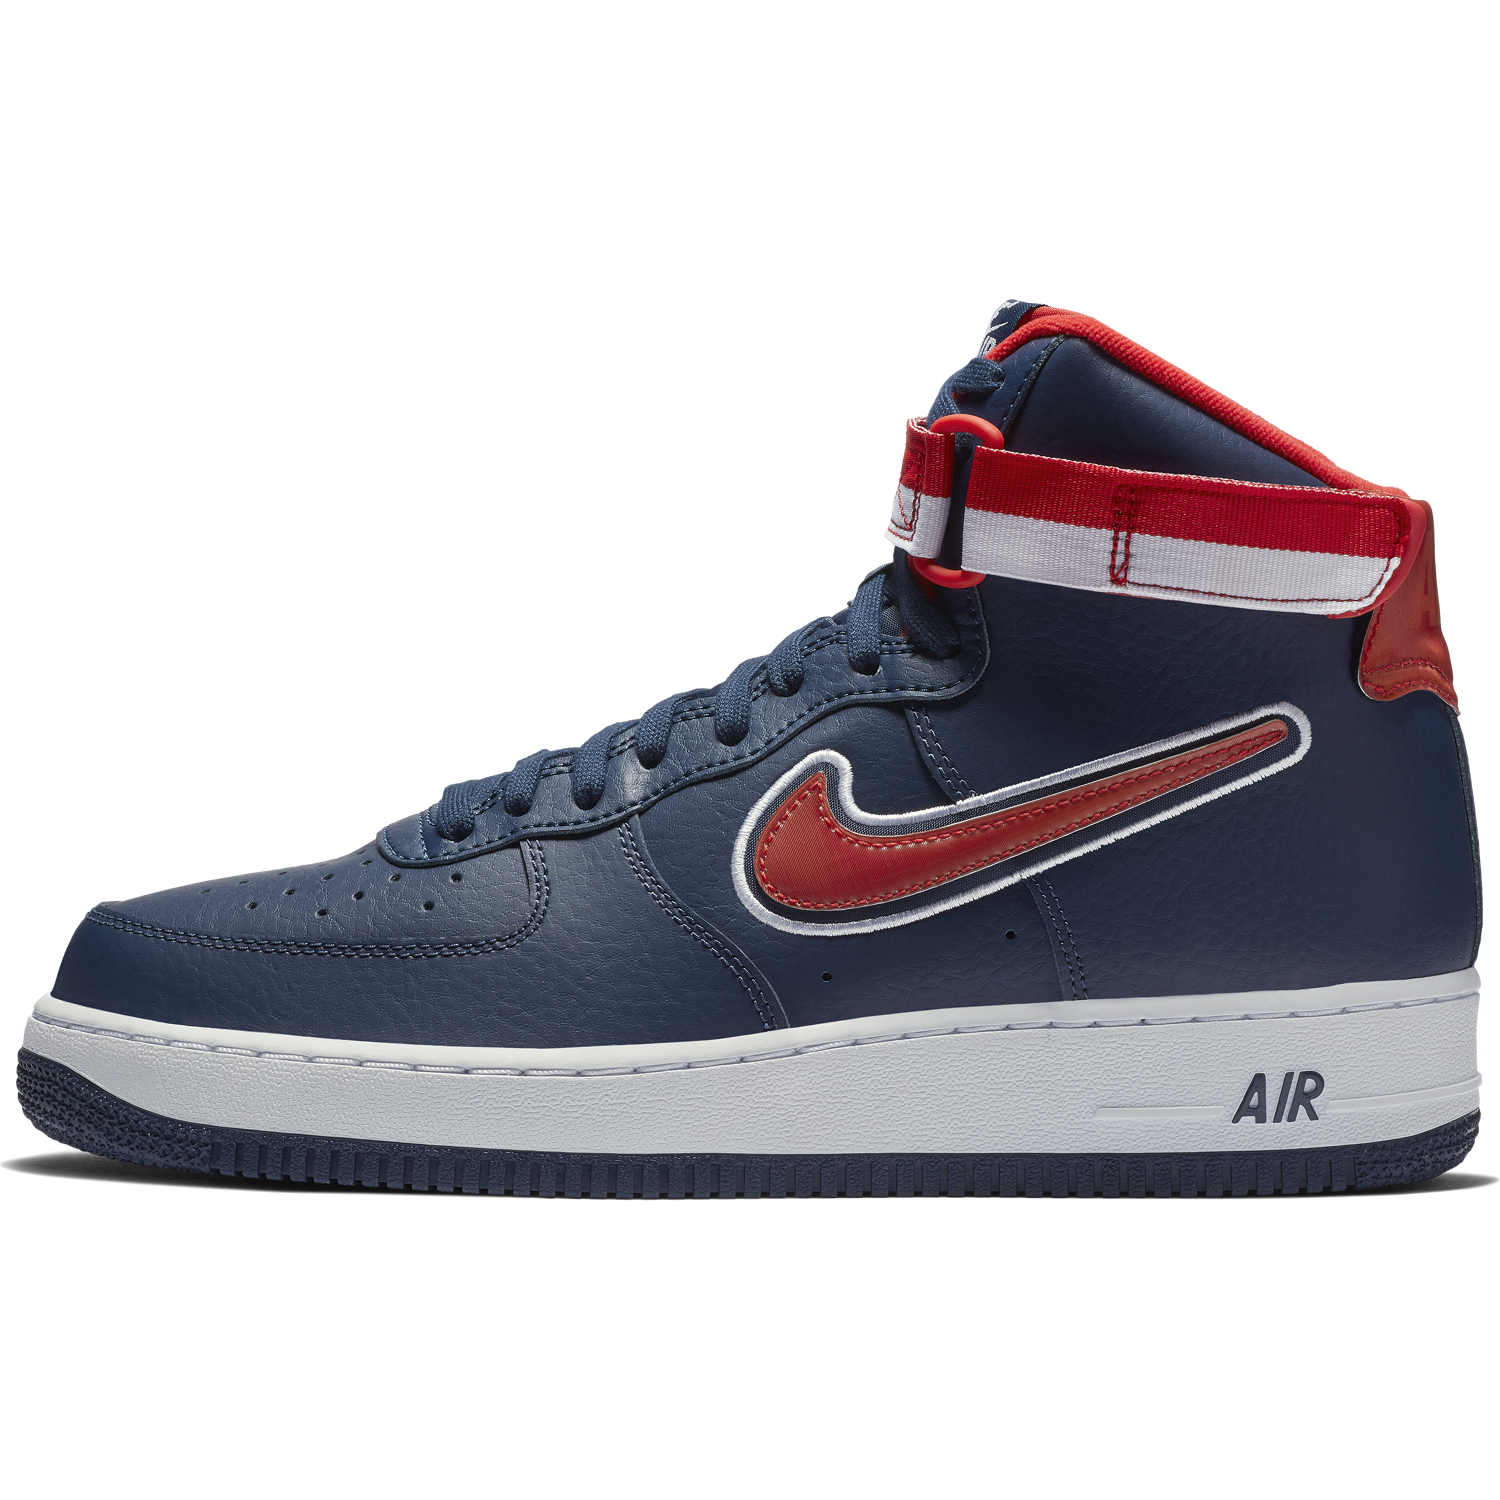 NIKE AIR FORCE 1 HIGH 07 LV8 SPORT AV3938-400